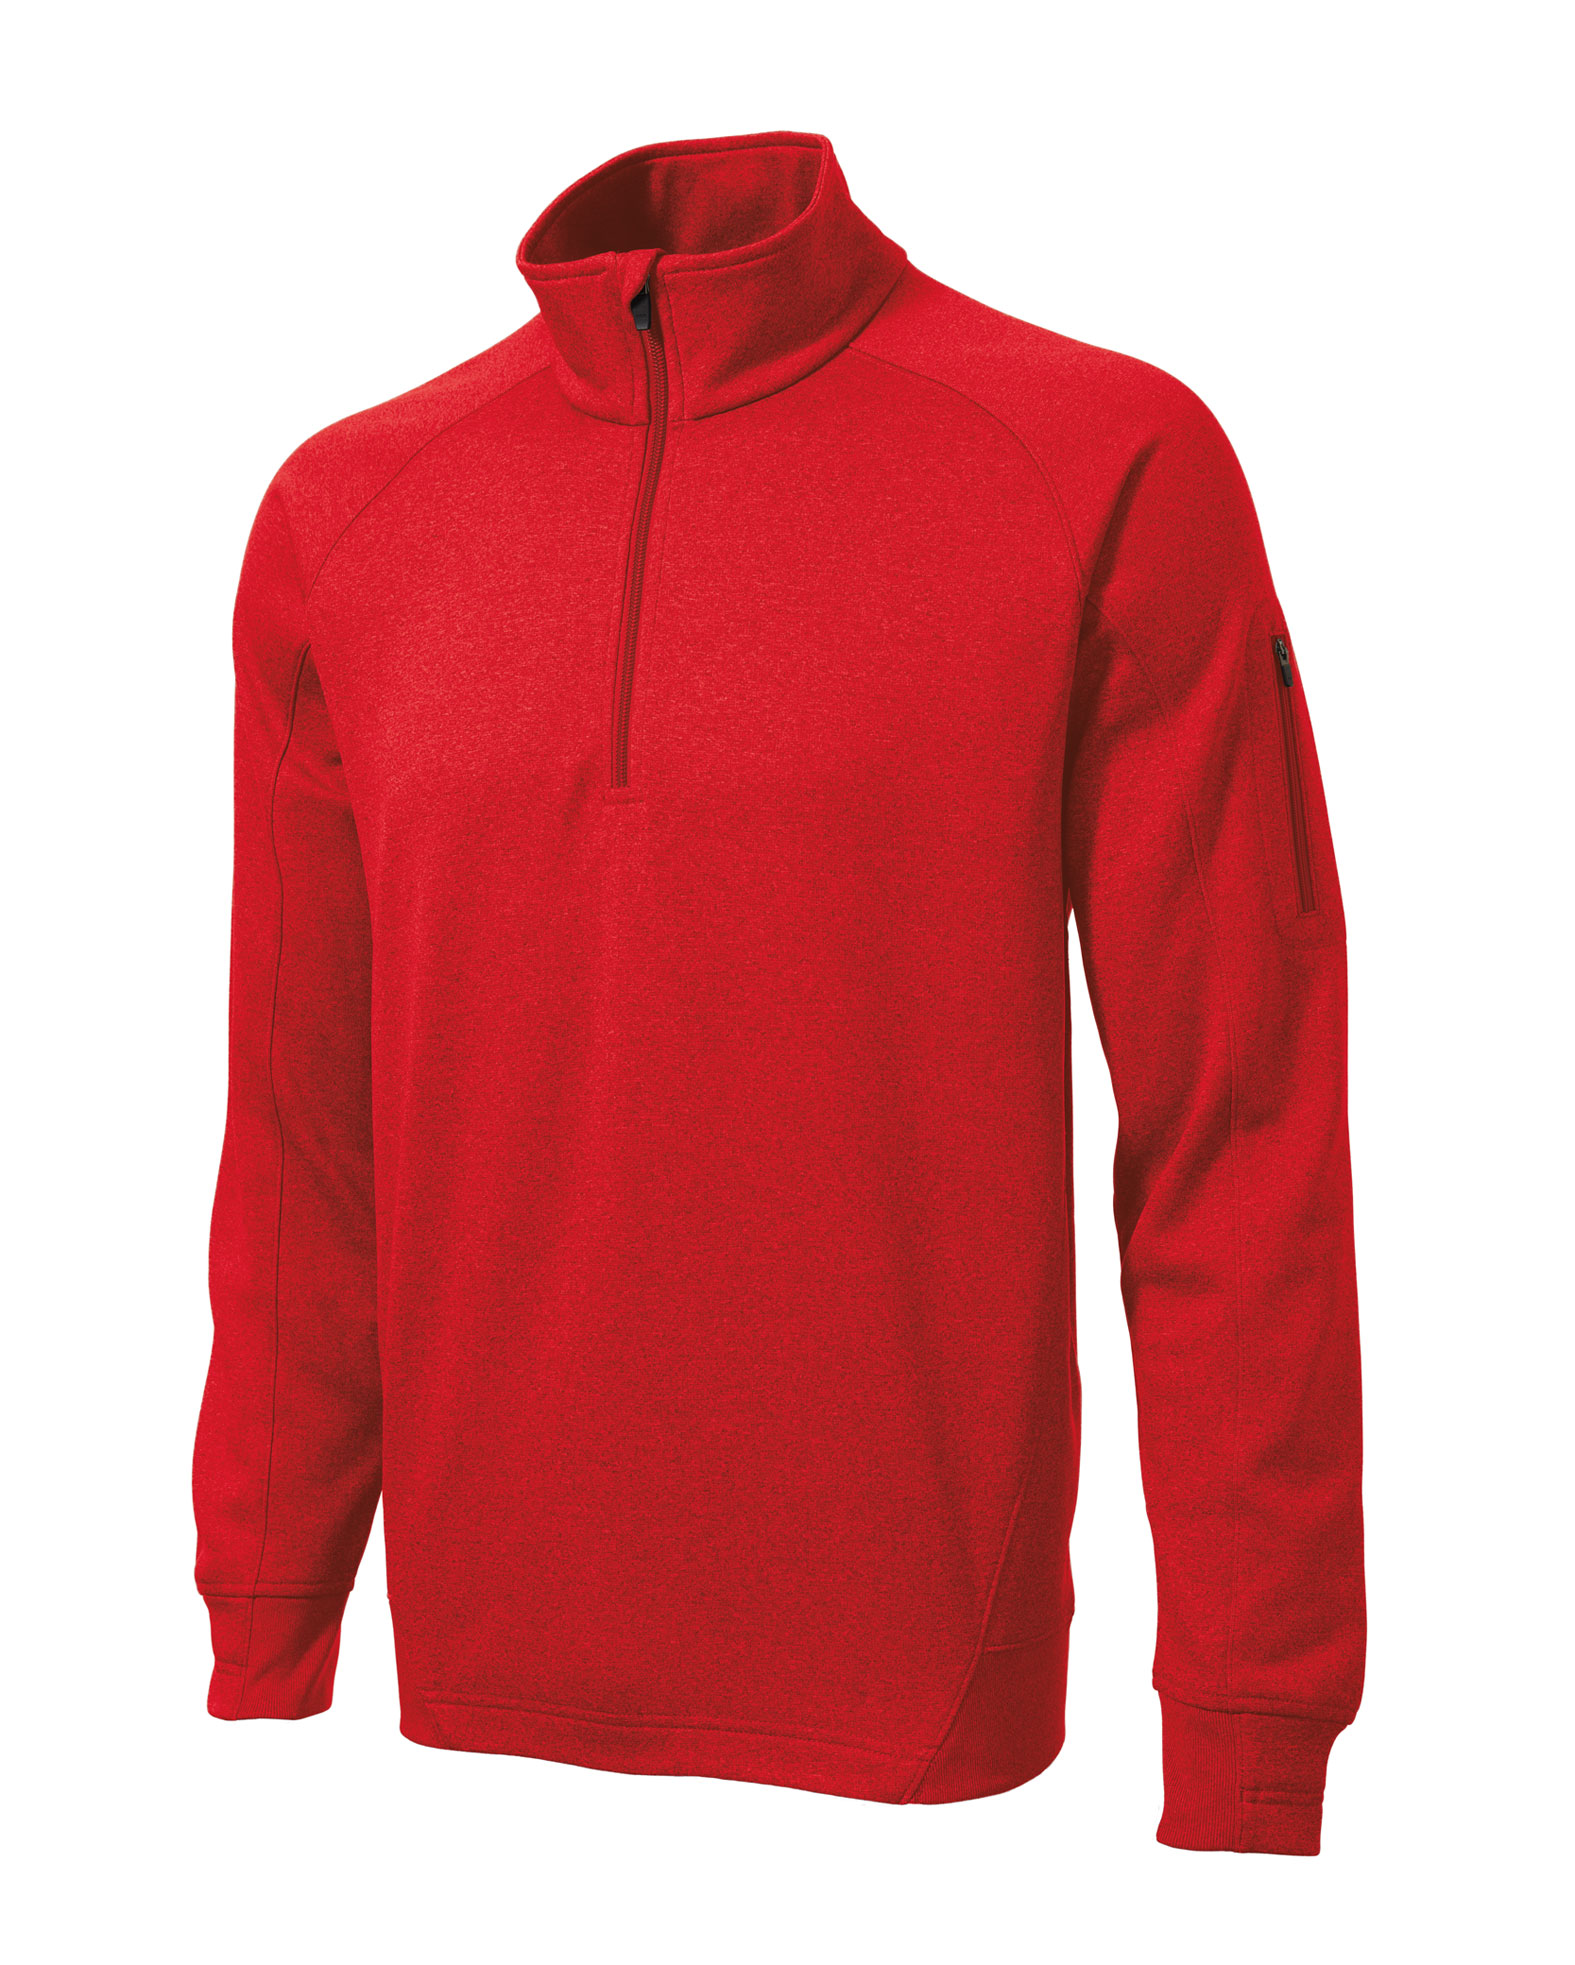 Mens Tall Tech Fleece 1/4-Zip Pullover